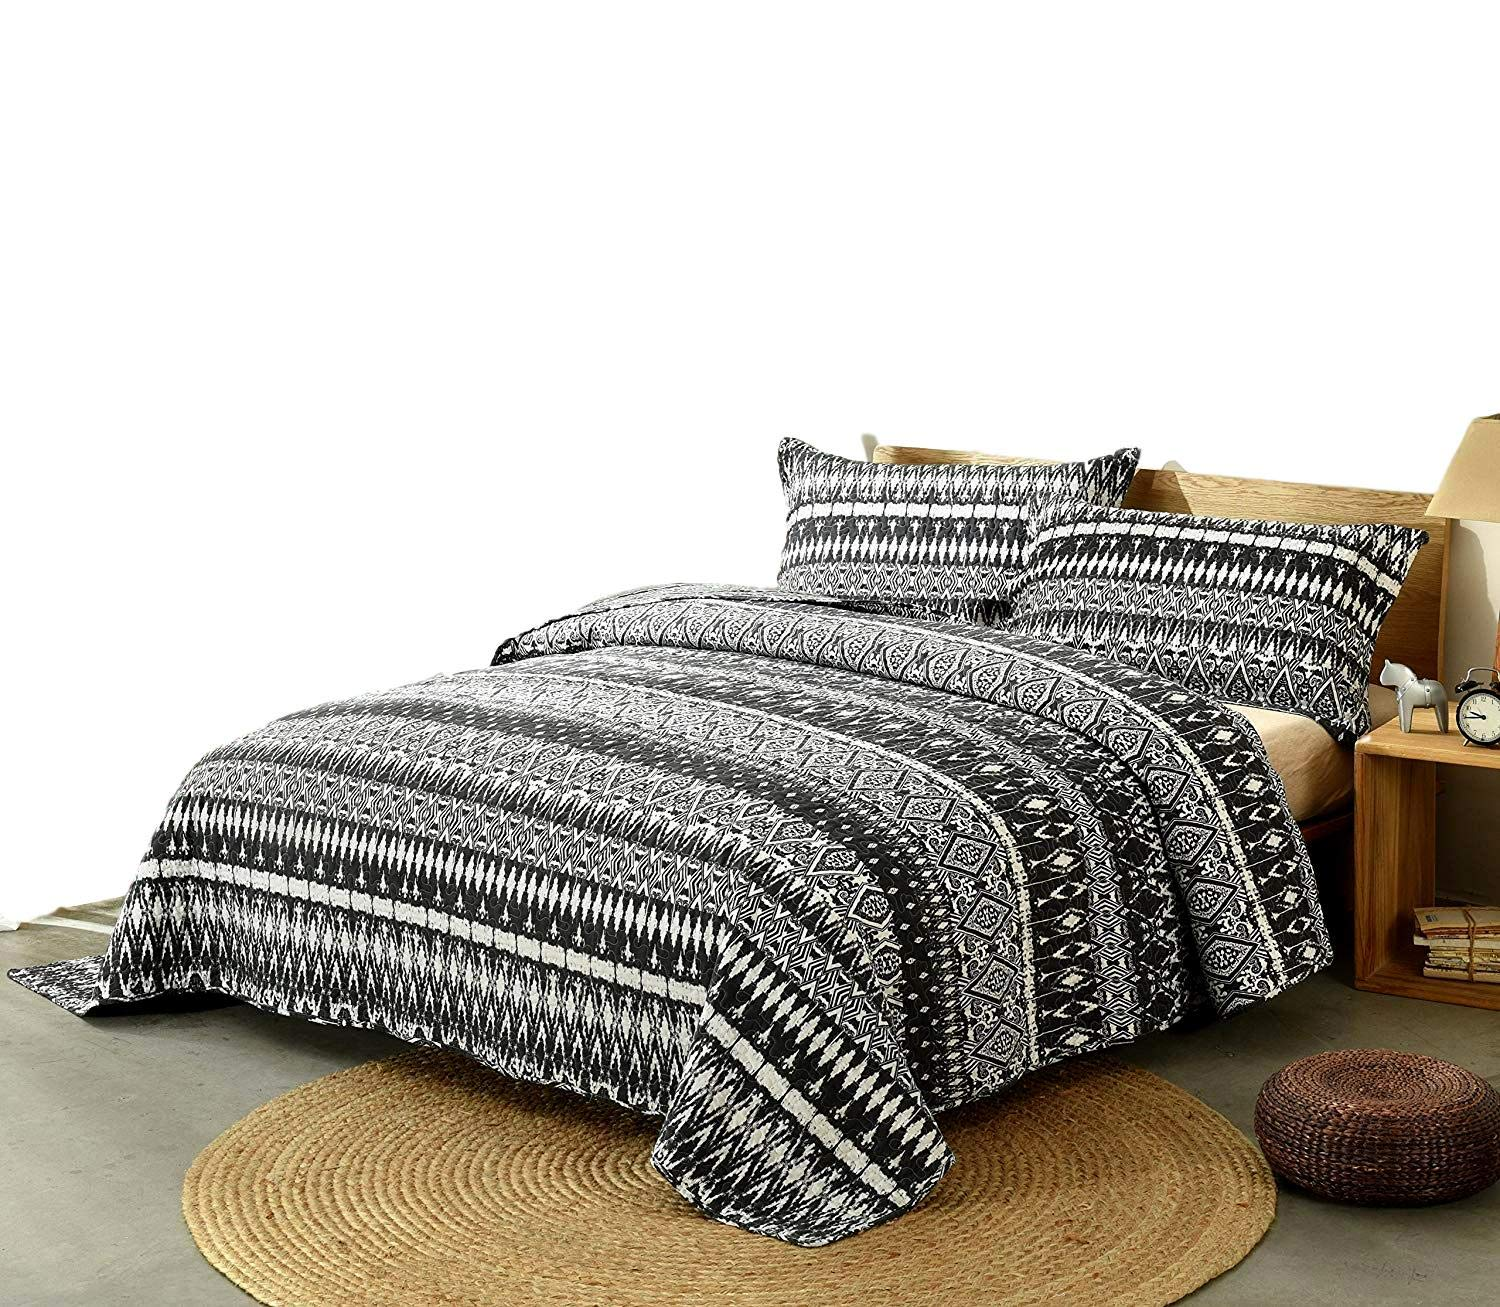 DaDa Bedding Aztec Bedspread Set - Native American Boho Diamond Stripes Quilted Coverlet Bohemian Tribal - Reversible Black & White - King - 3-Pieces